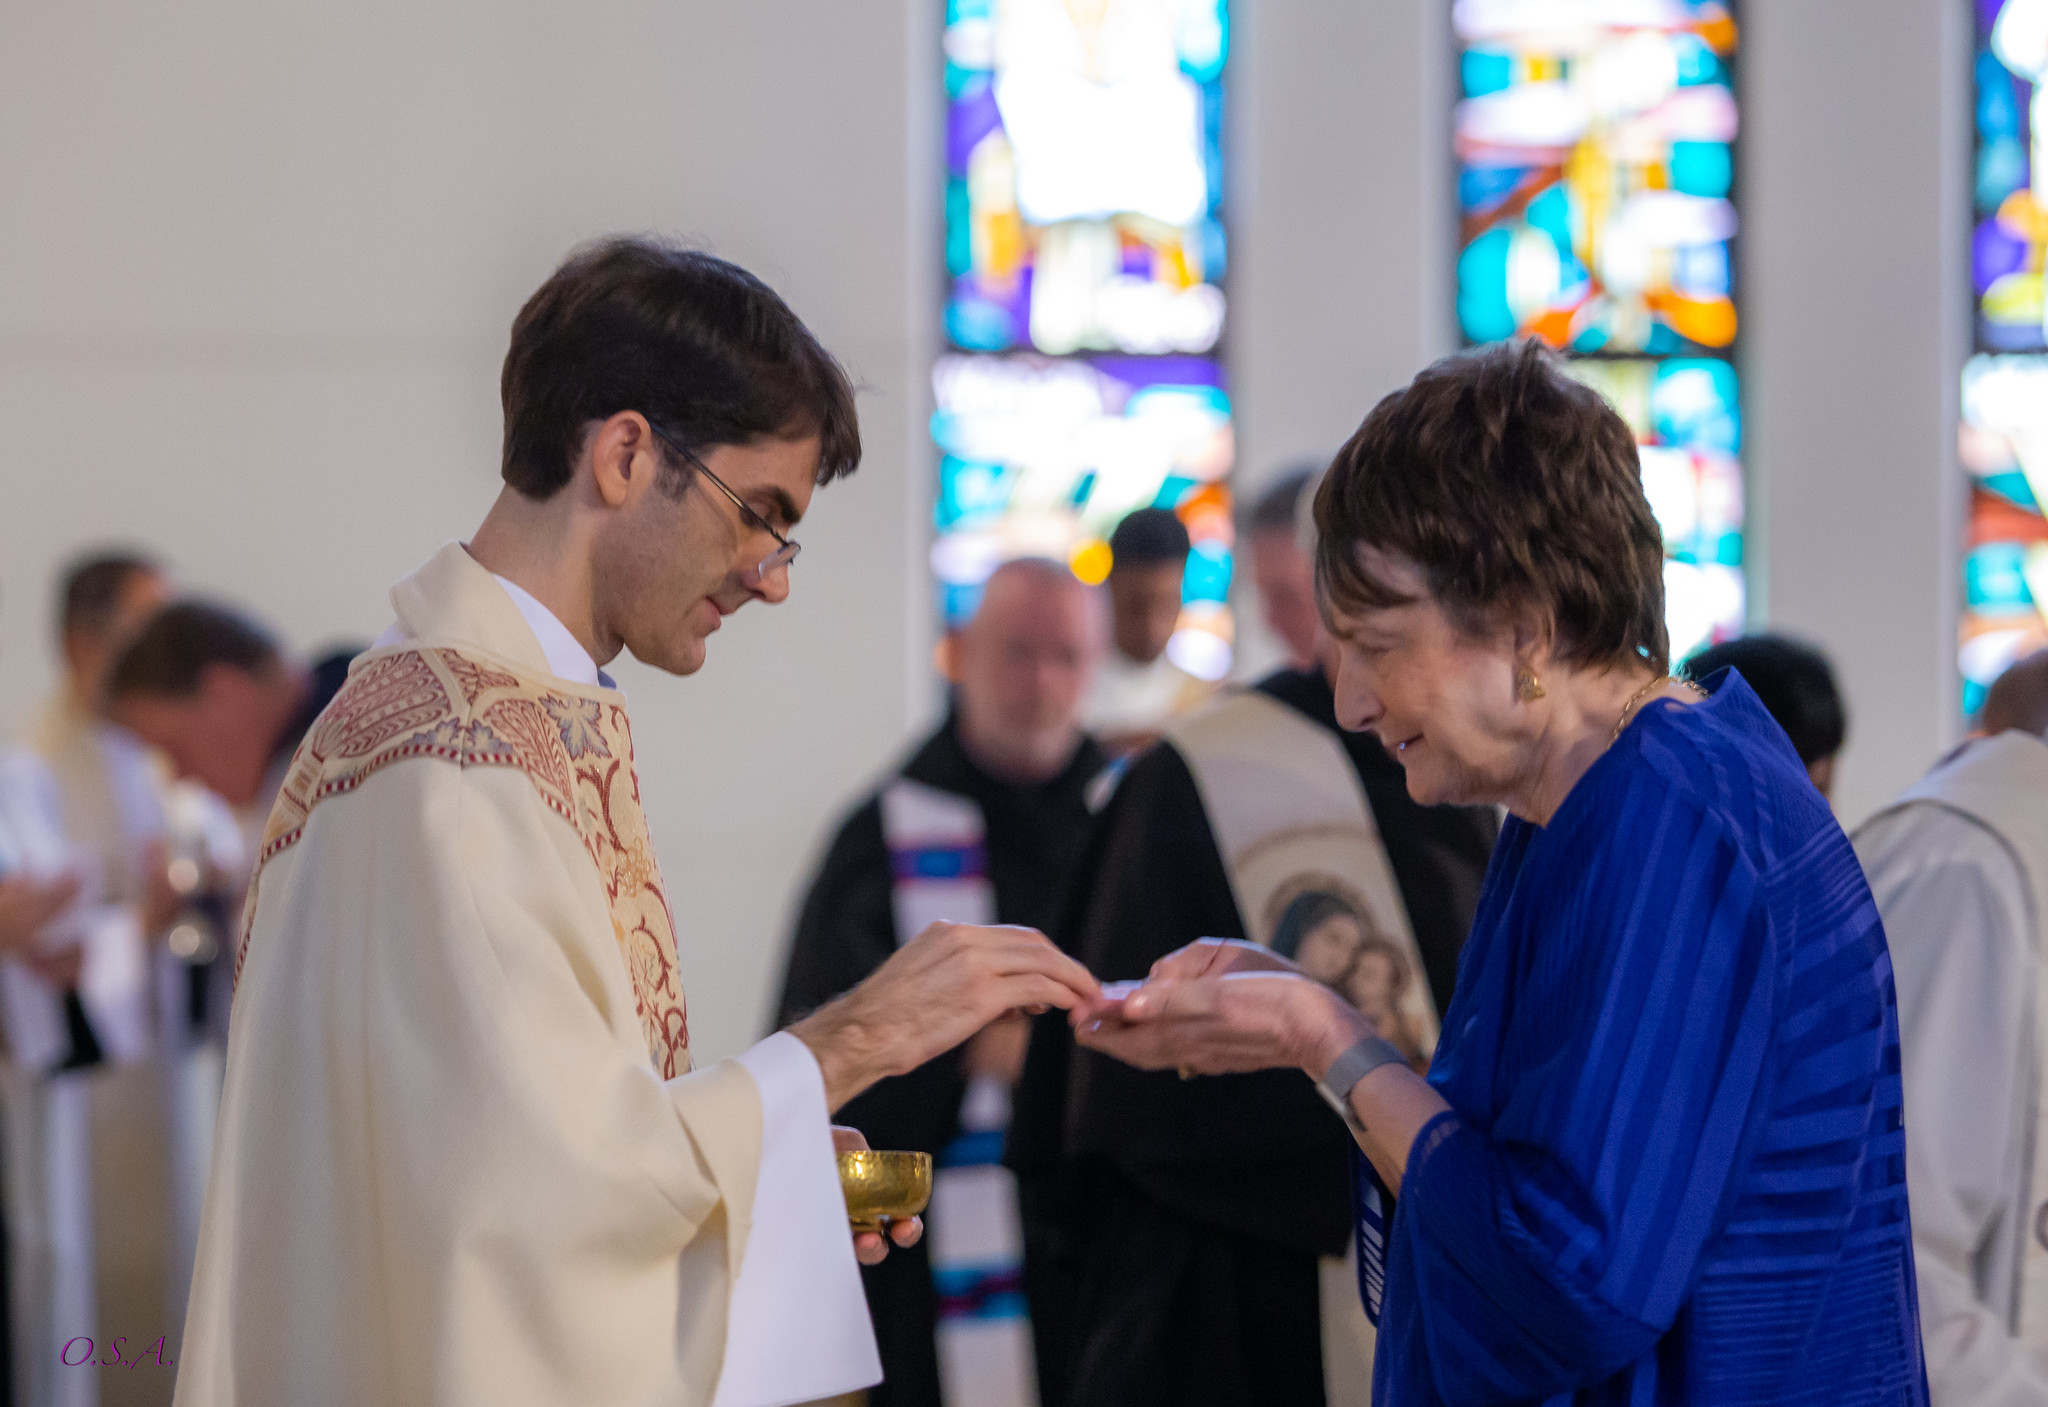 Fr. Nick and his Mother